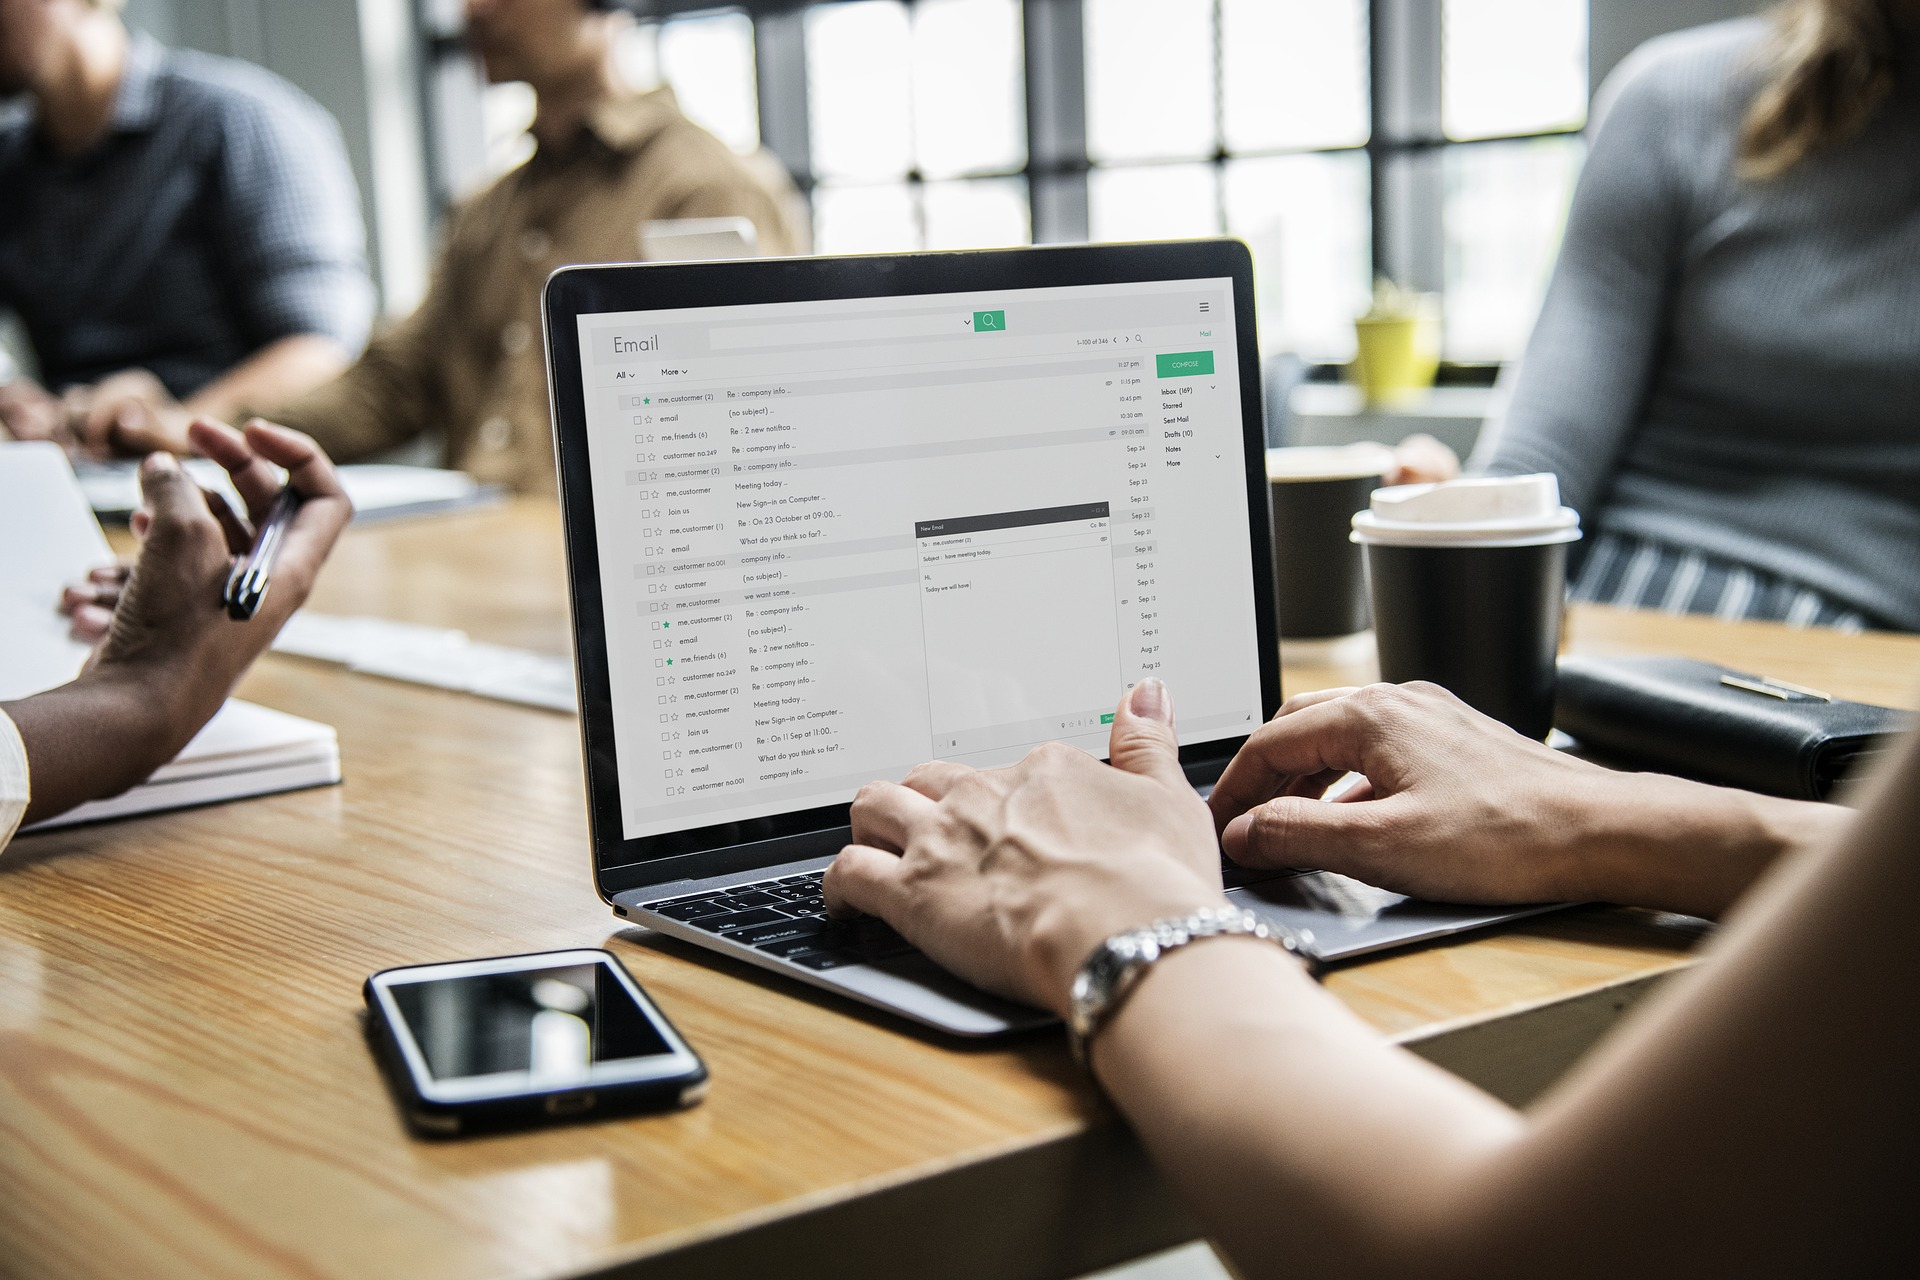 How to Increase Email Efficiency As a Consultant